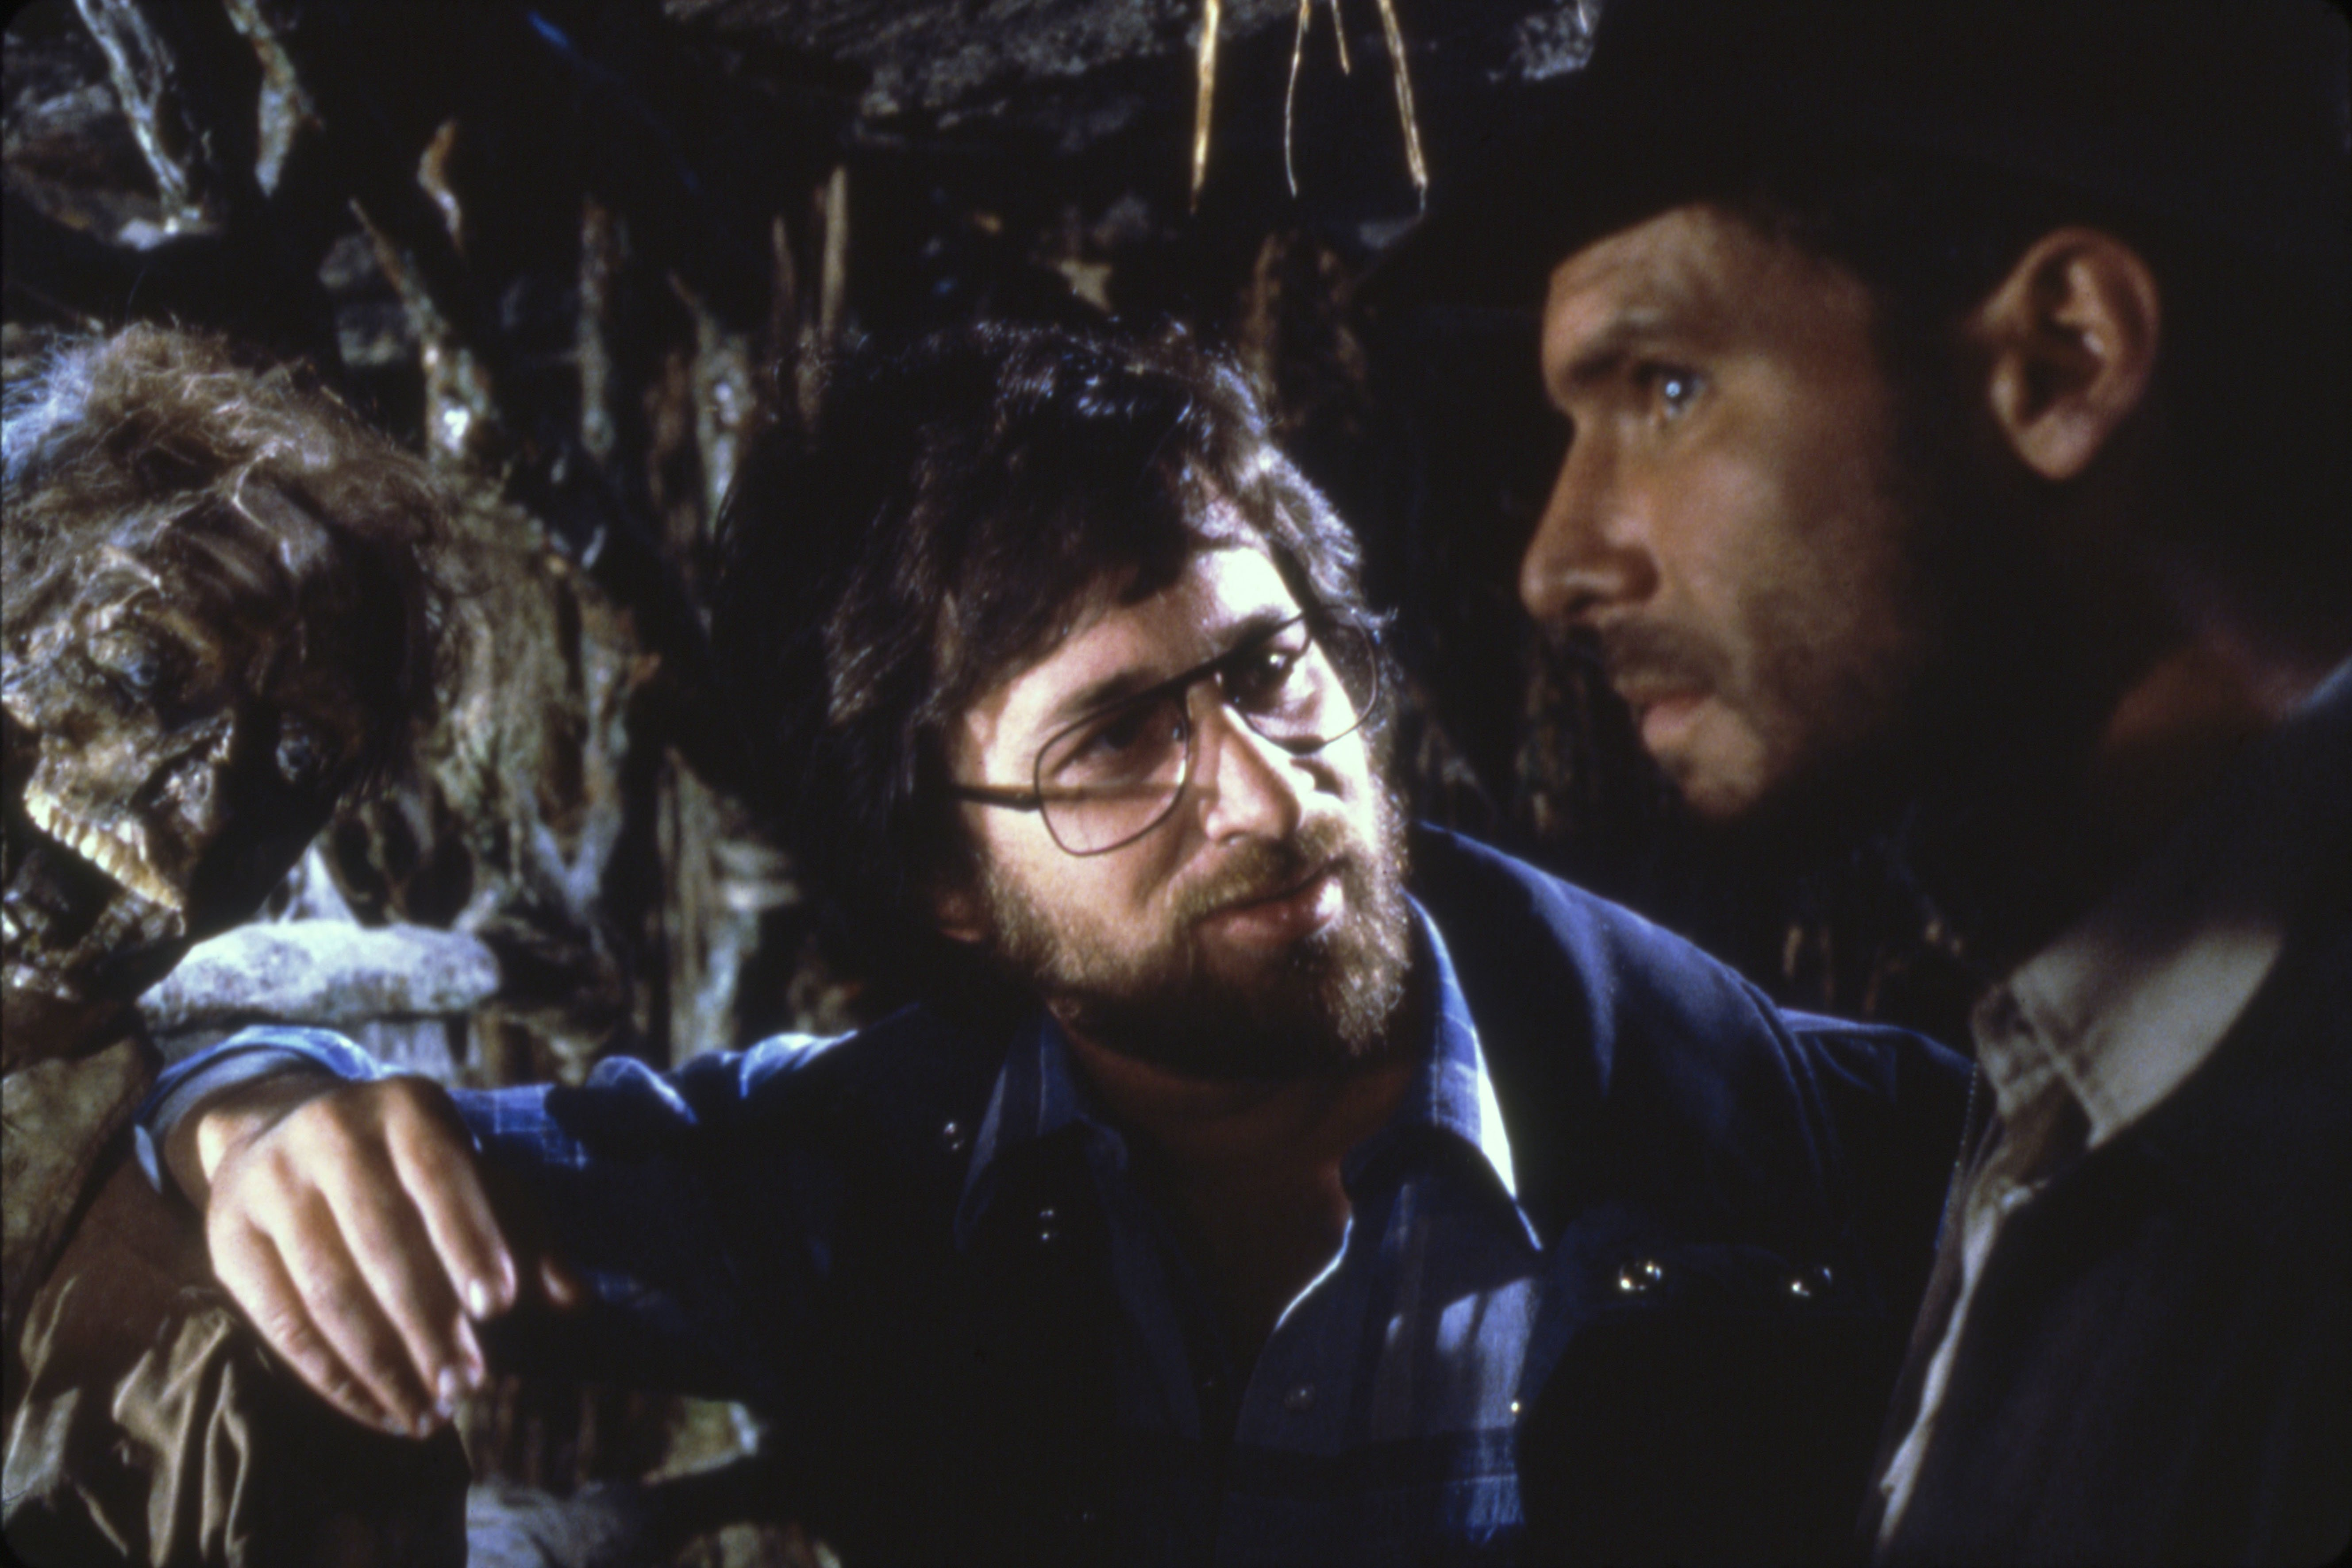 Steven-Spielberg-Harrison-Ford-Raiders-of-the-Lost-Ark-Photo-Credit-Sunset-Boulevard-Corbis-via-Getty-Images.jpg